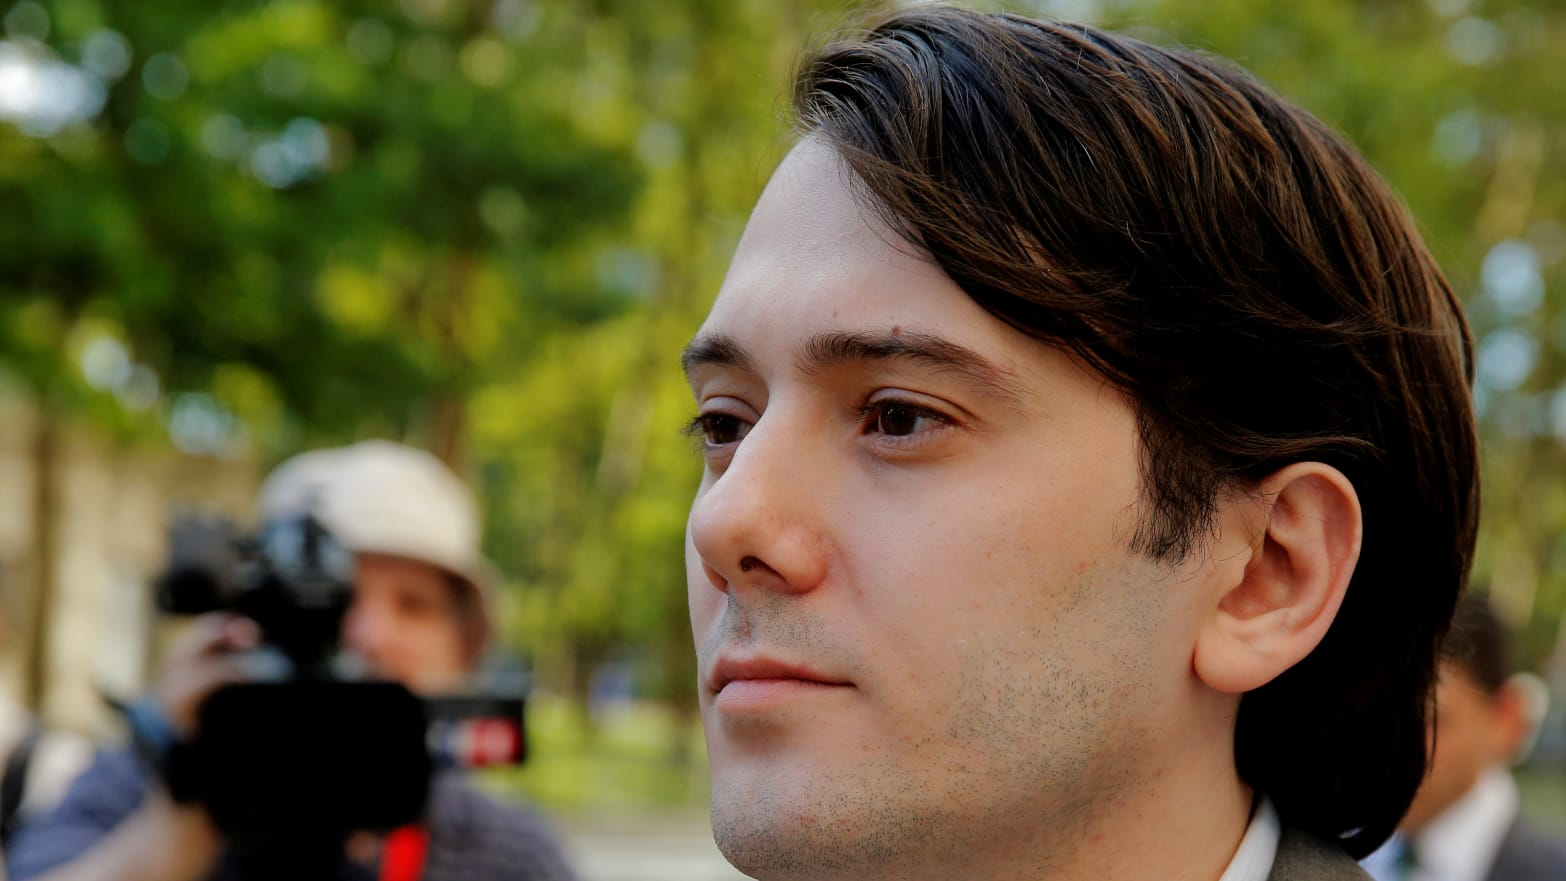 Martin Shkreli, former chief executive officer of Turing Pharmaceuticals and KaloBios Pharmaceuticals Inc, departs after a hearing at U.S. Federal Court in Brooklyn, New York, U.S., June 26, 2017.